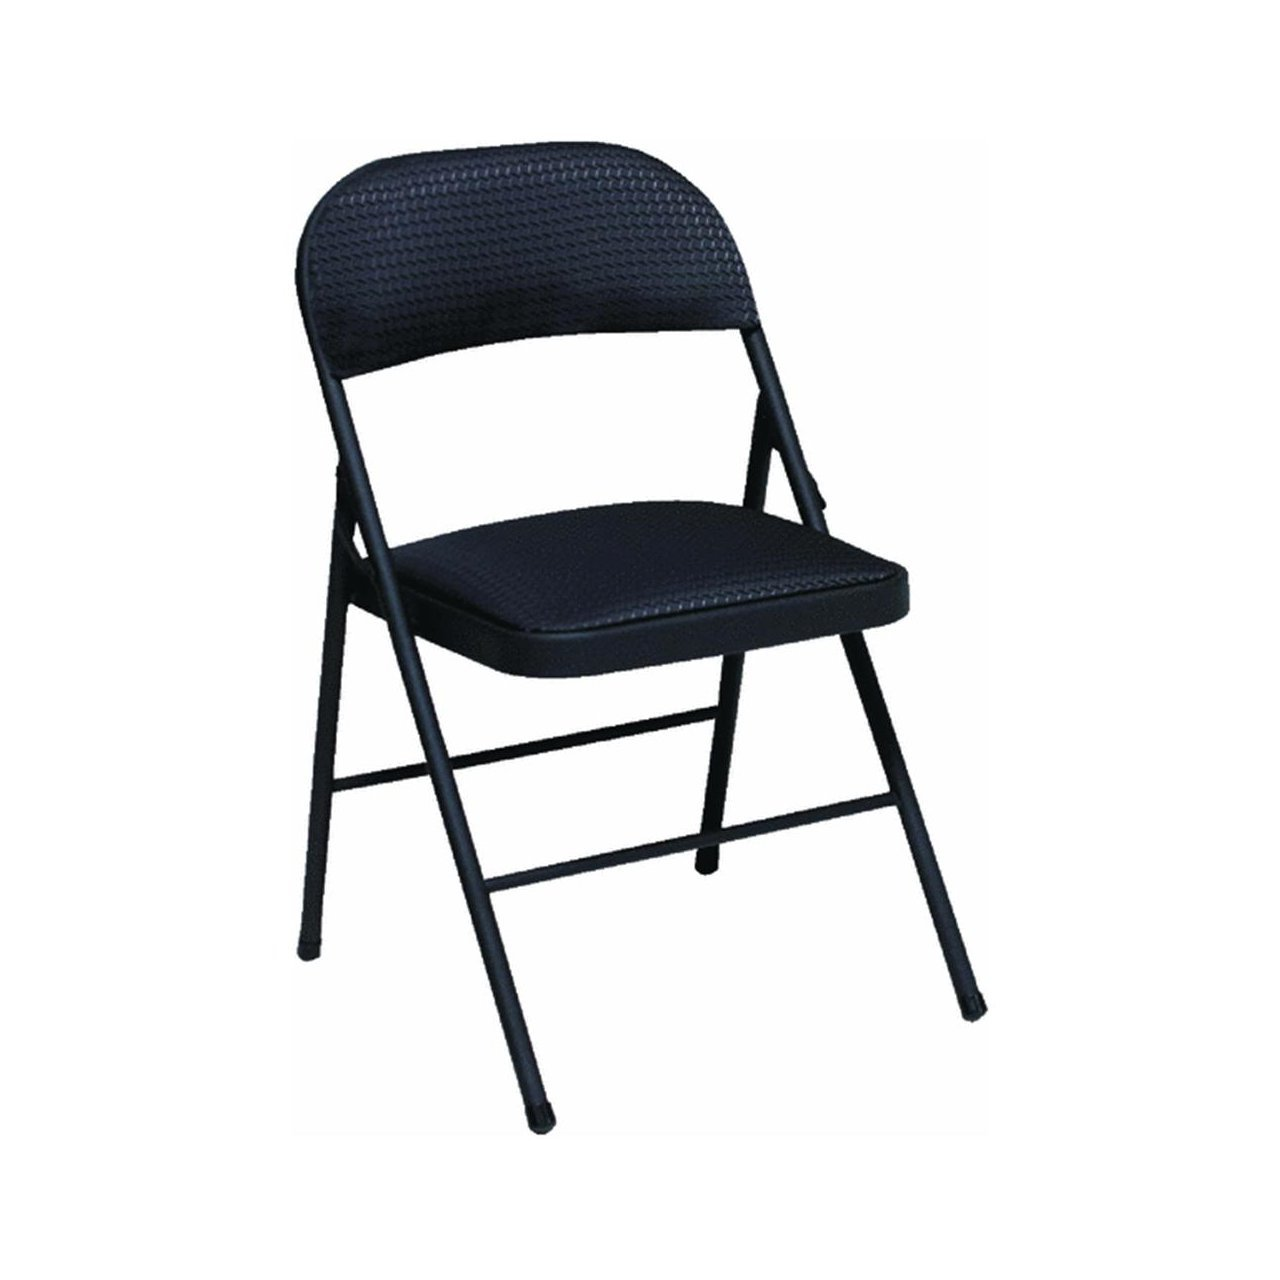 Cosco Folding Chair Cosco Folding Chairs 4 Pack